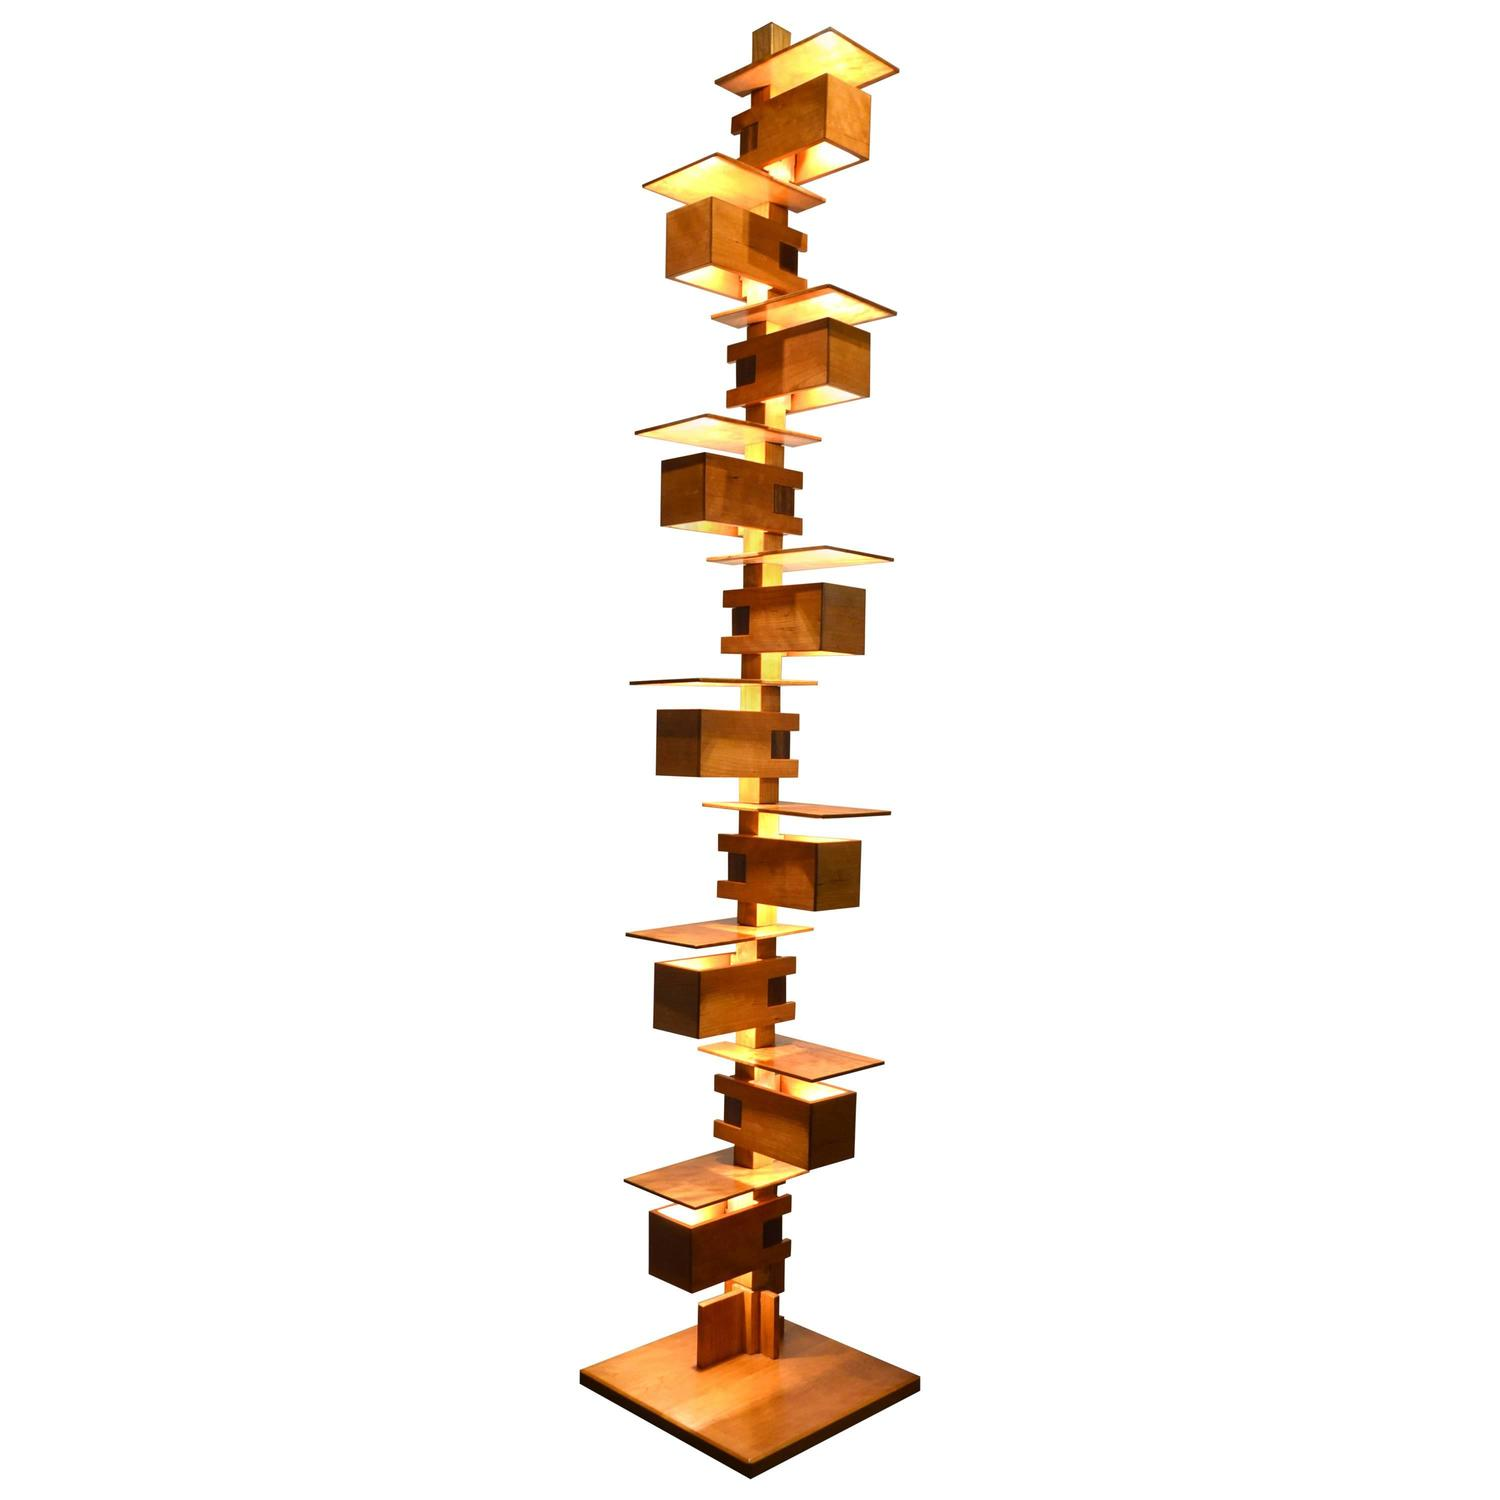 Fantastic taliesin frank lloyd wright wood floor lamp at for Taliesin 1 table lamp